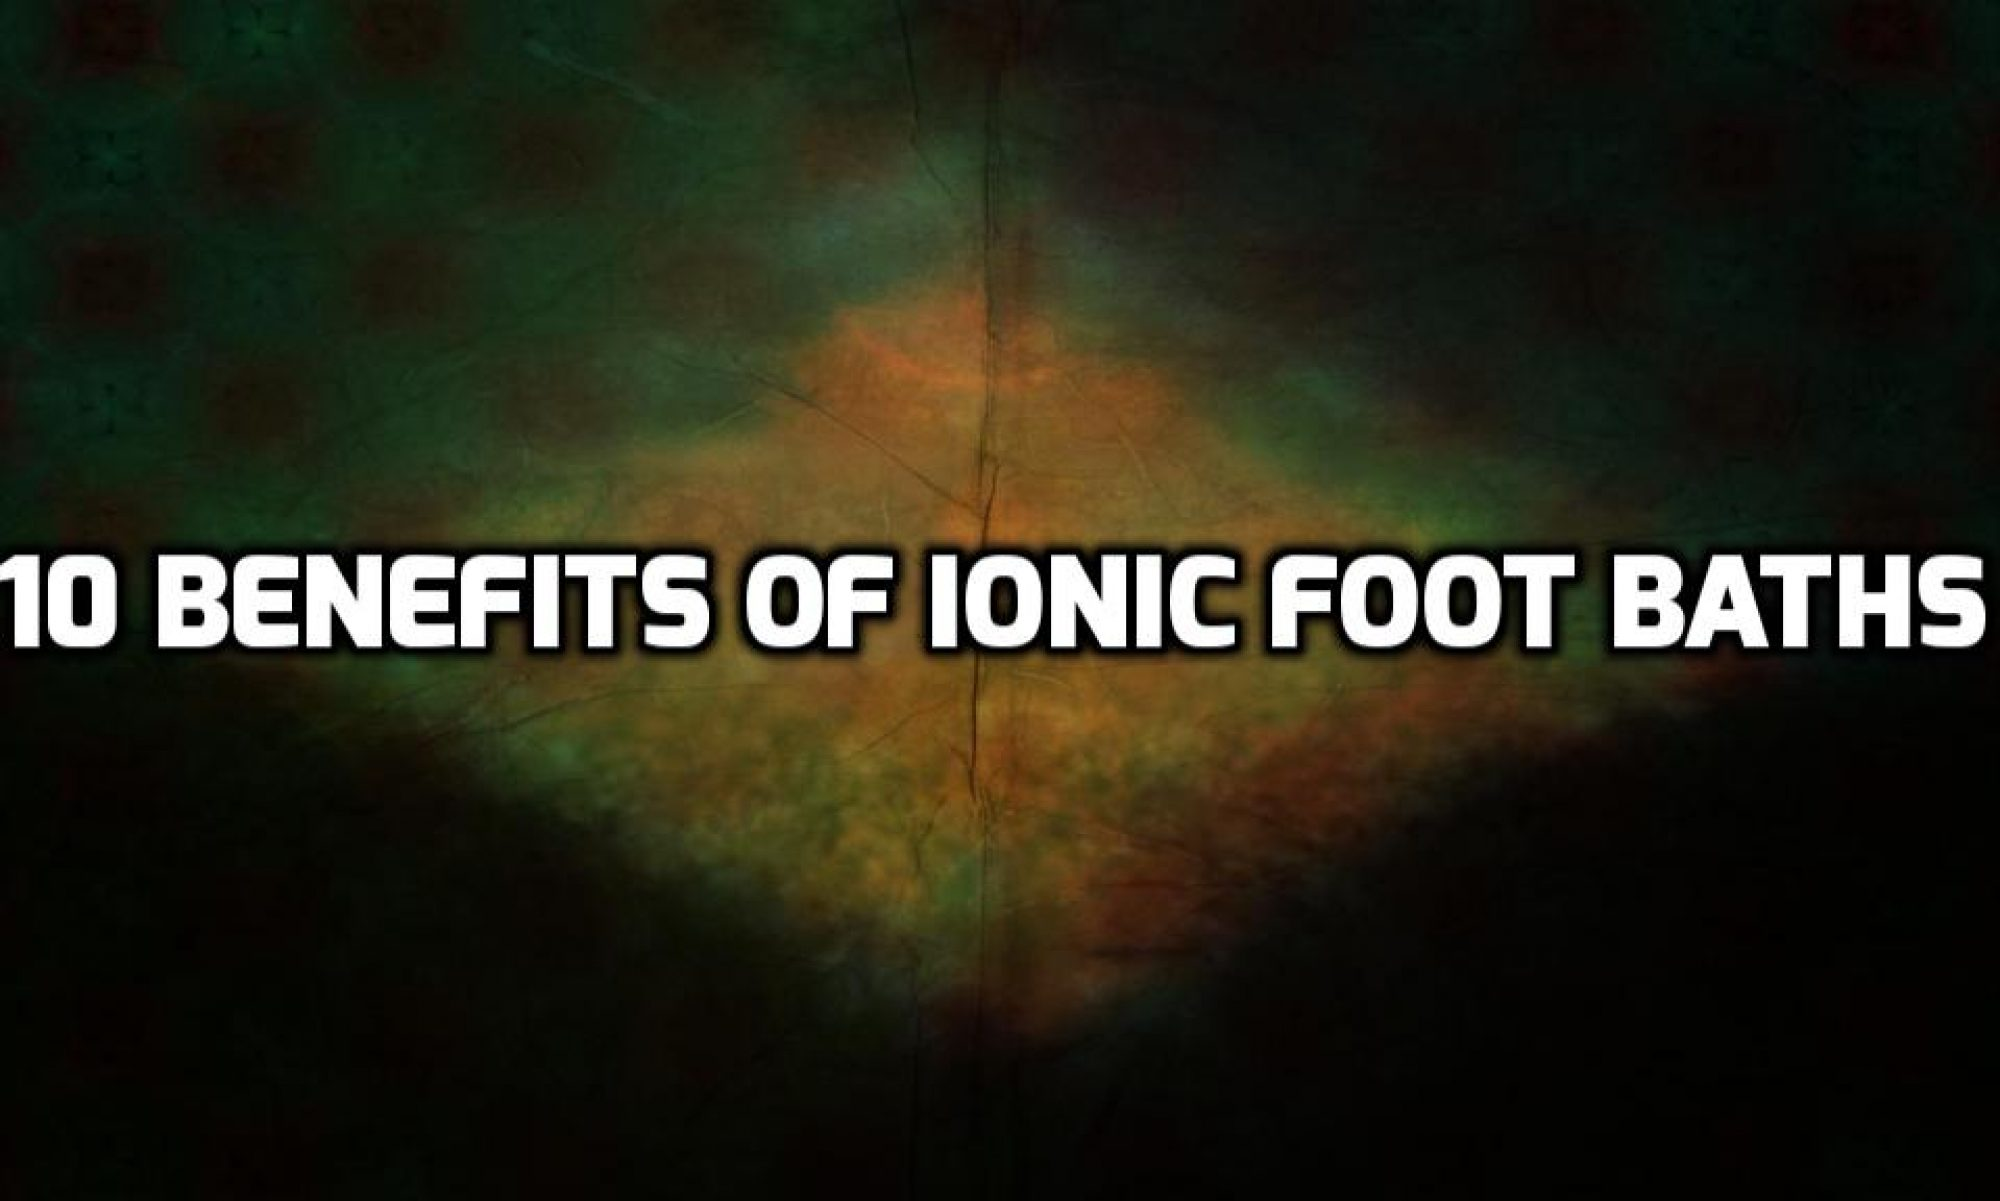 10 Benefits Of Ionic Foot Bath